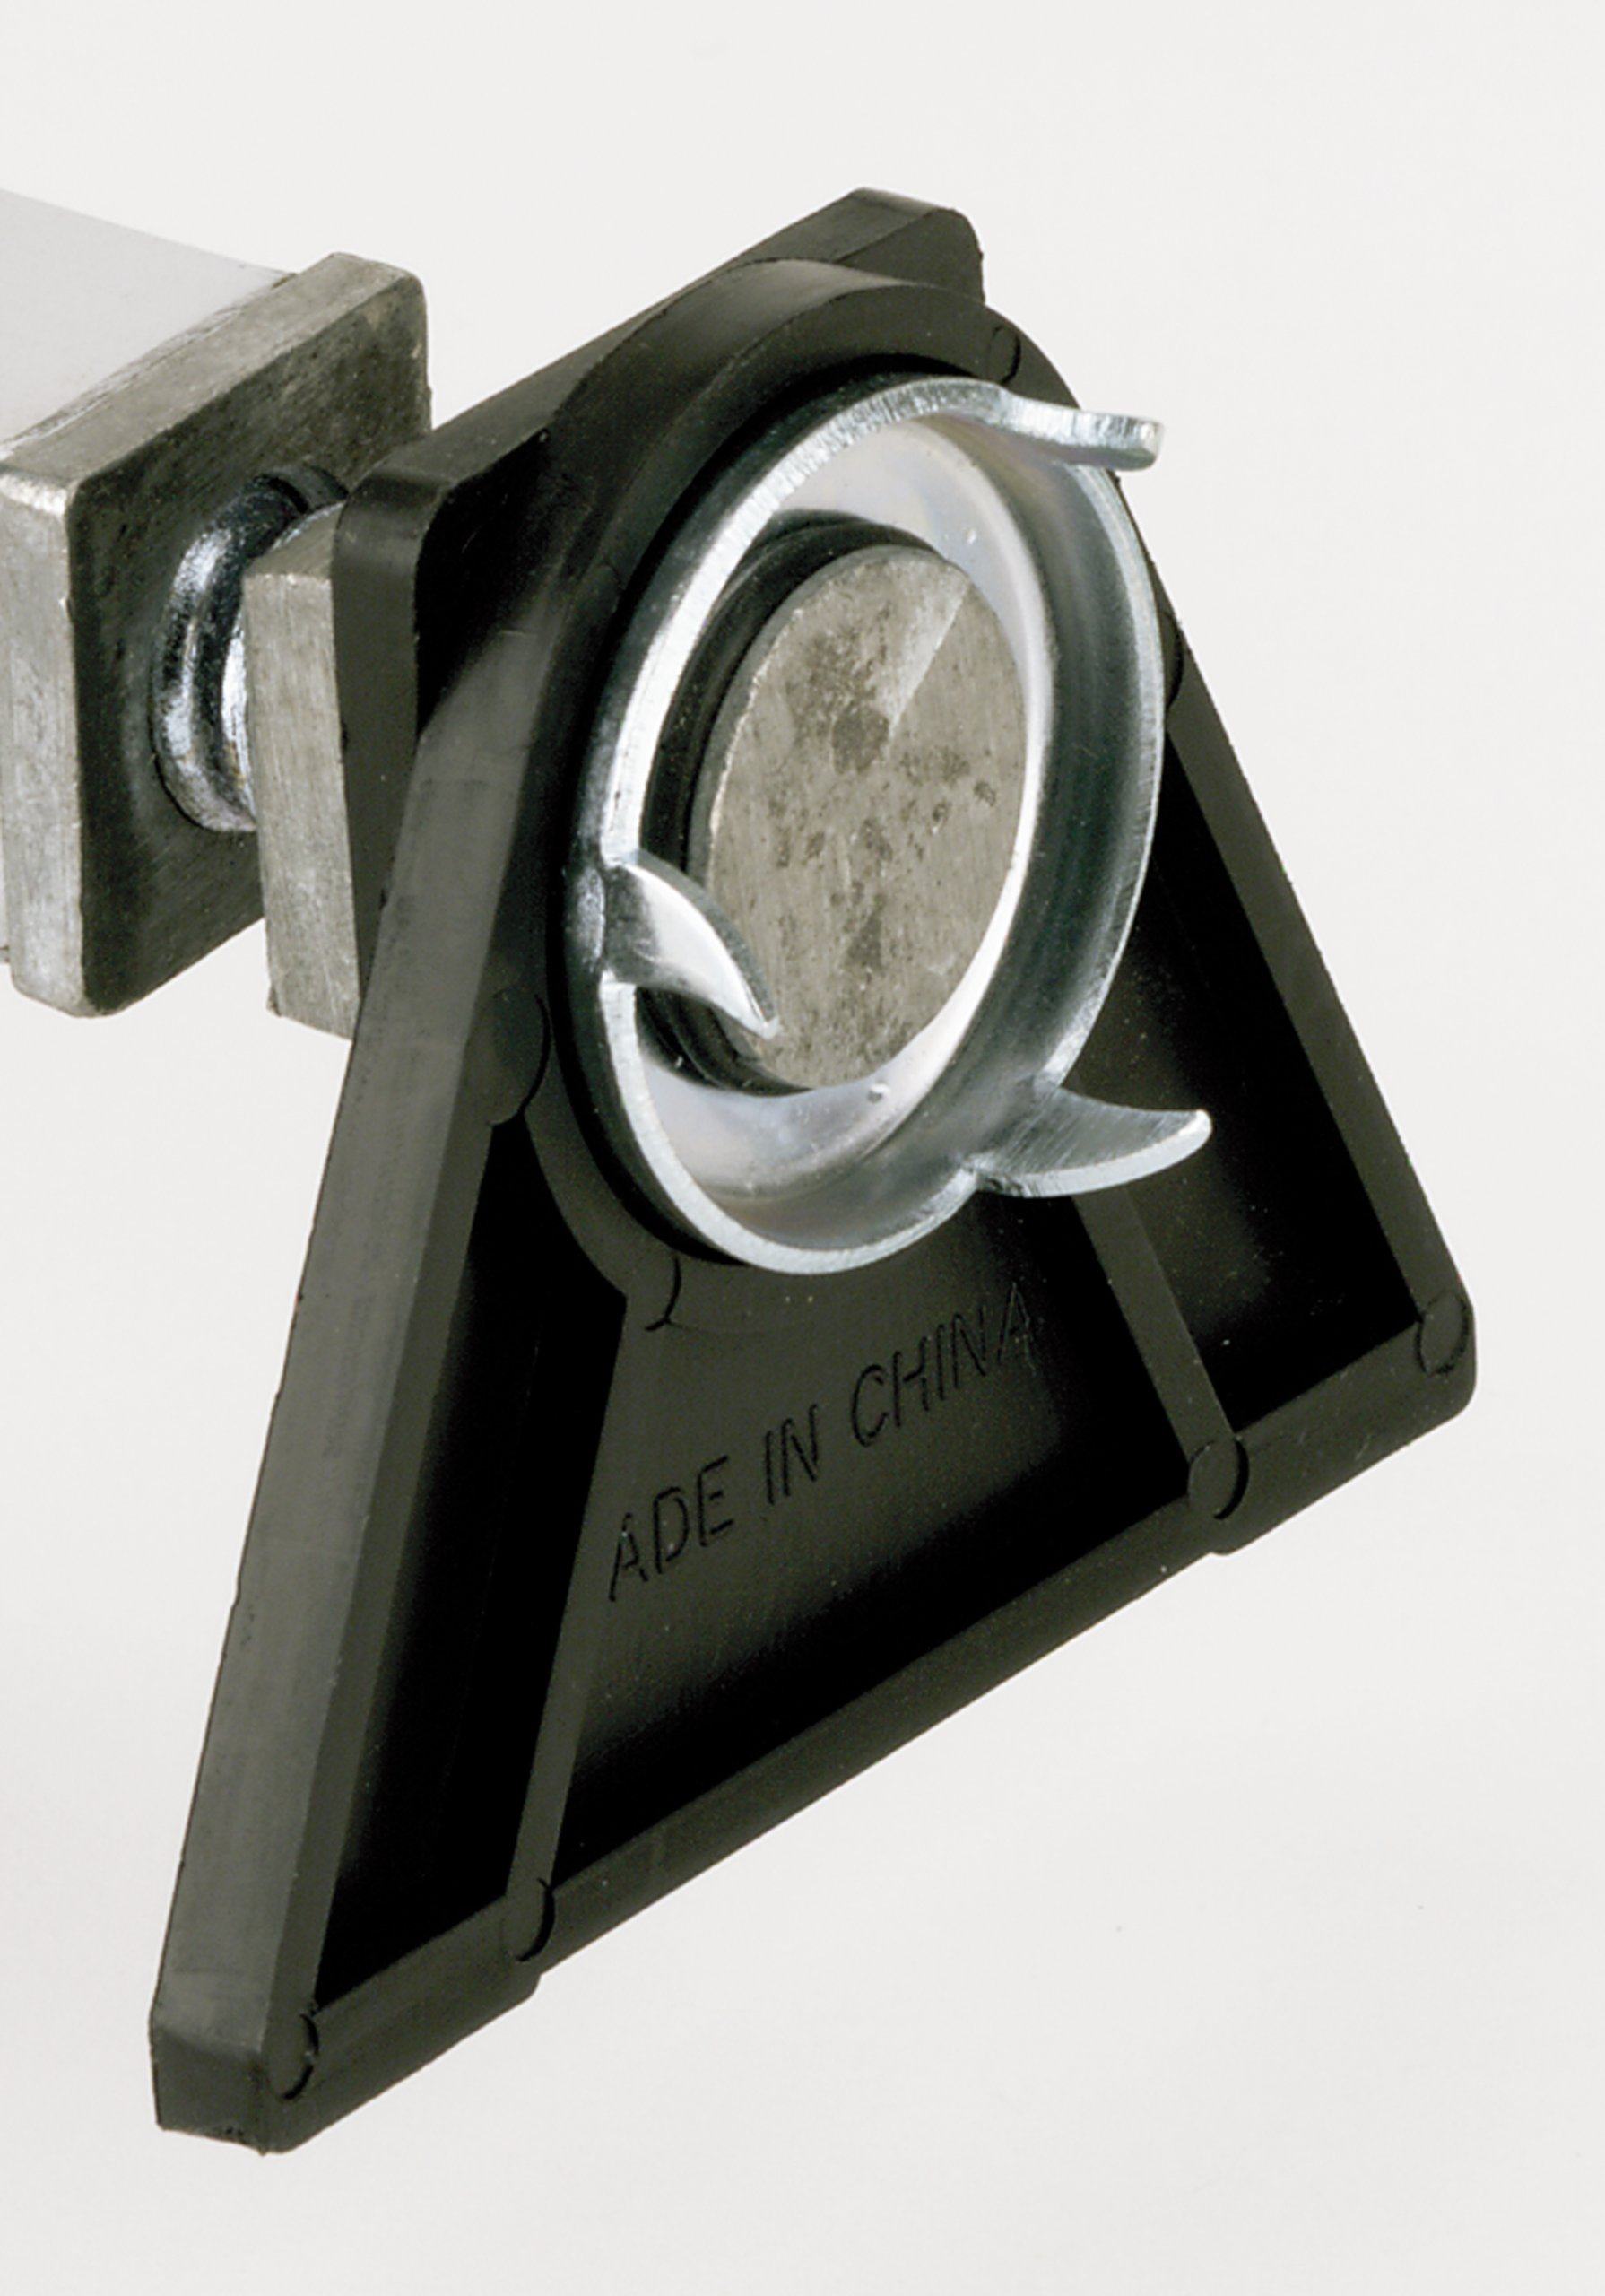 Westinghouse Lighting 0110000 Saf-T-Brace for Ceiling Fans, 3 Teeth, Twist and Lock by Westinghouse Lighting (Image #5)